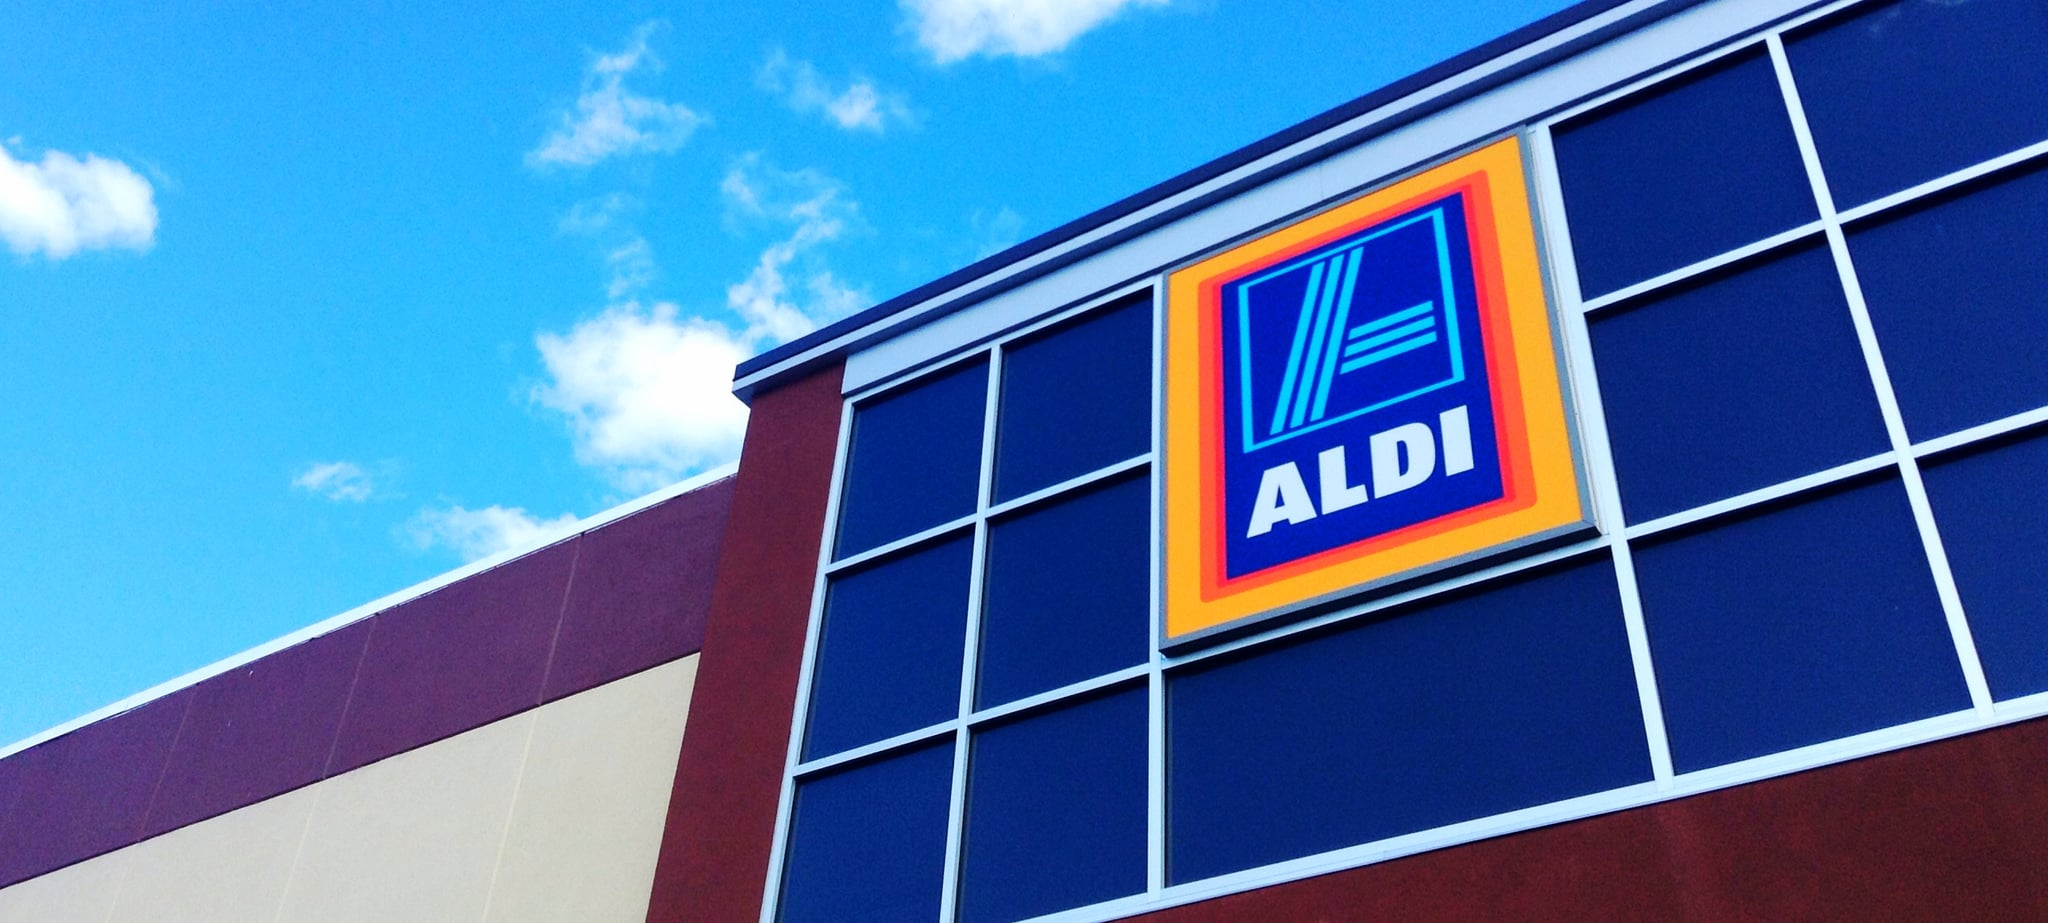 Image result for aldi is my friend